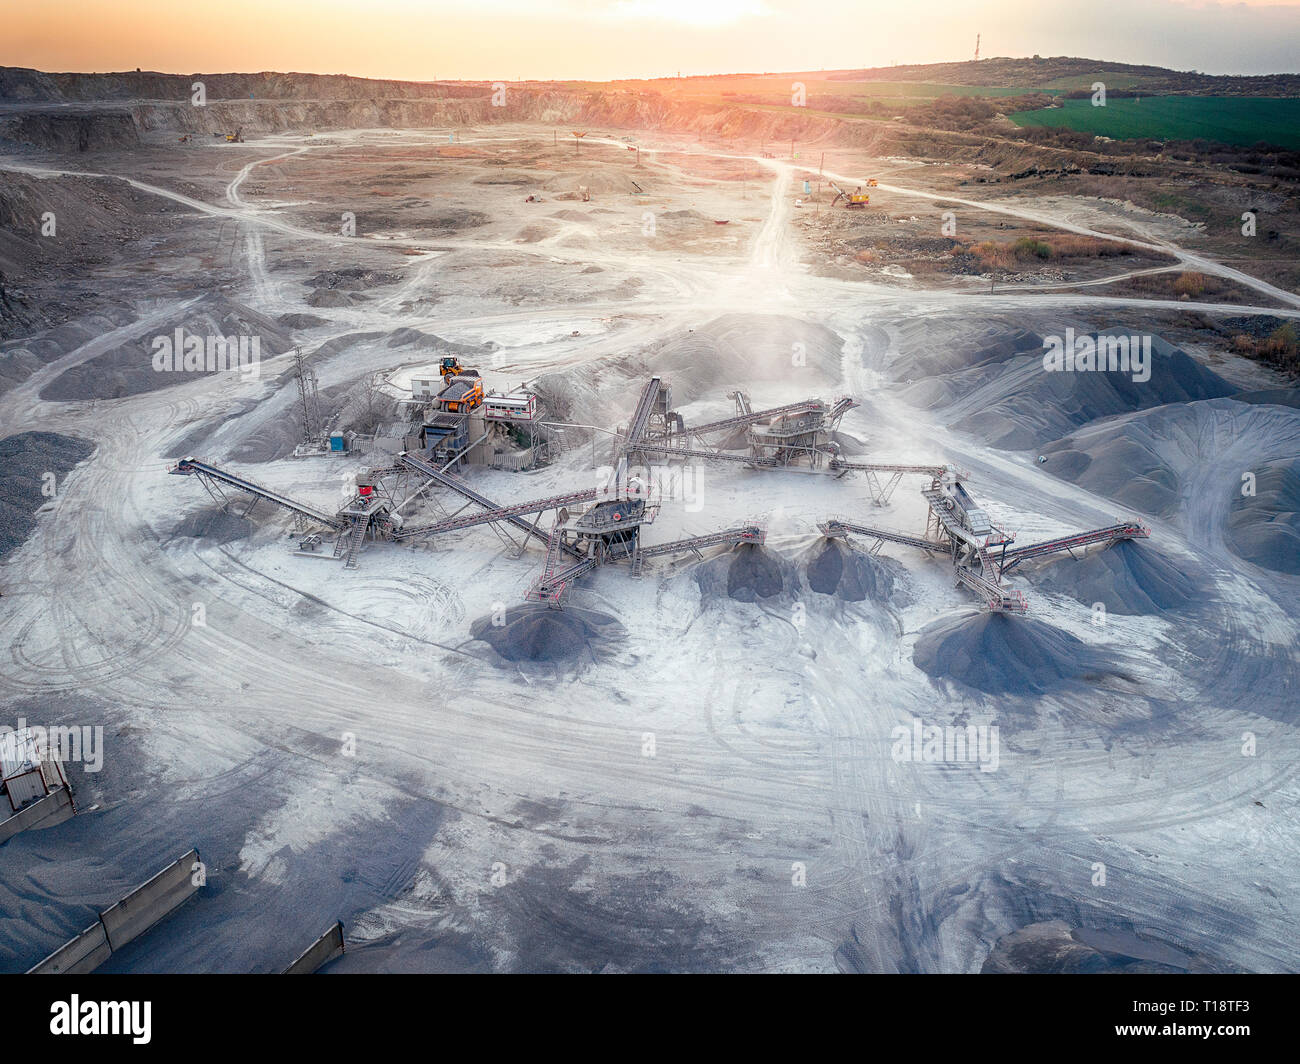 Panoramic view at sunset of gravel quarry, mining of yellow construction gravel, pumping gravel with help of powerful pumps, post-apocalyptic landscap - Stock Image